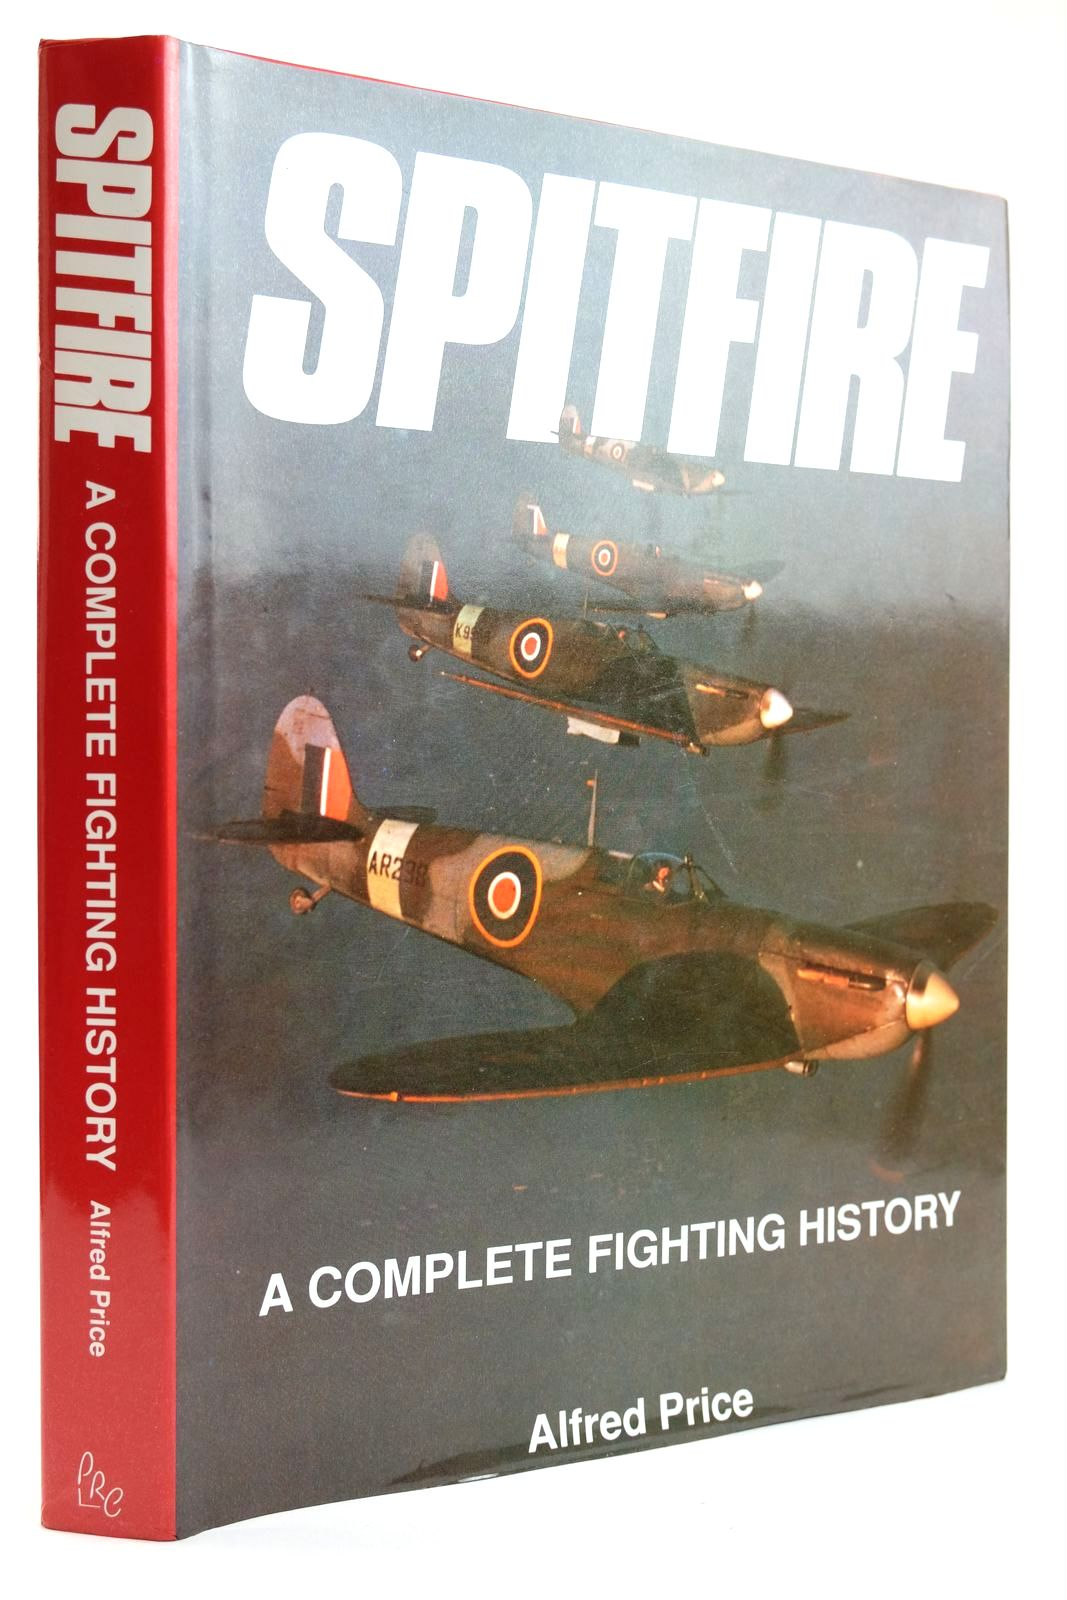 Photo of SPITFIRE A COMPLETE FIGHTING HISTORY written by Price, Alfred published by Promotional Reprint Company Ltd. (STOCK CODE: 2132152)  for sale by Stella & Rose's Books